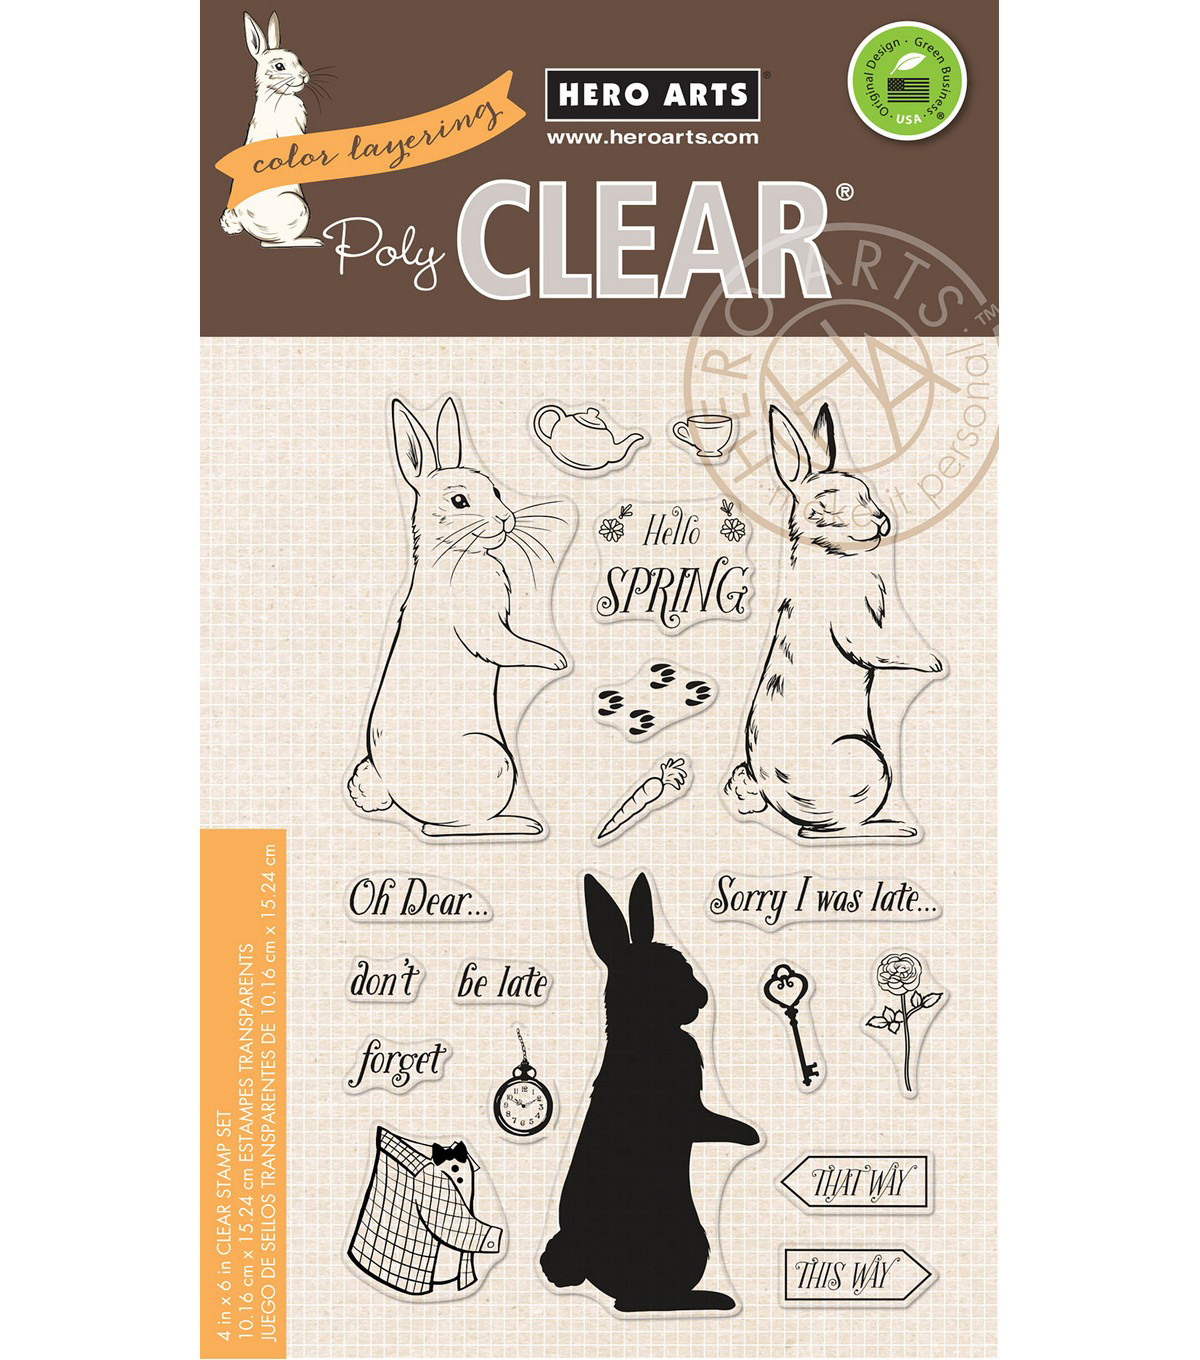 Hero Arts 19 pk Color Layering Clear Stamps-Rabbit